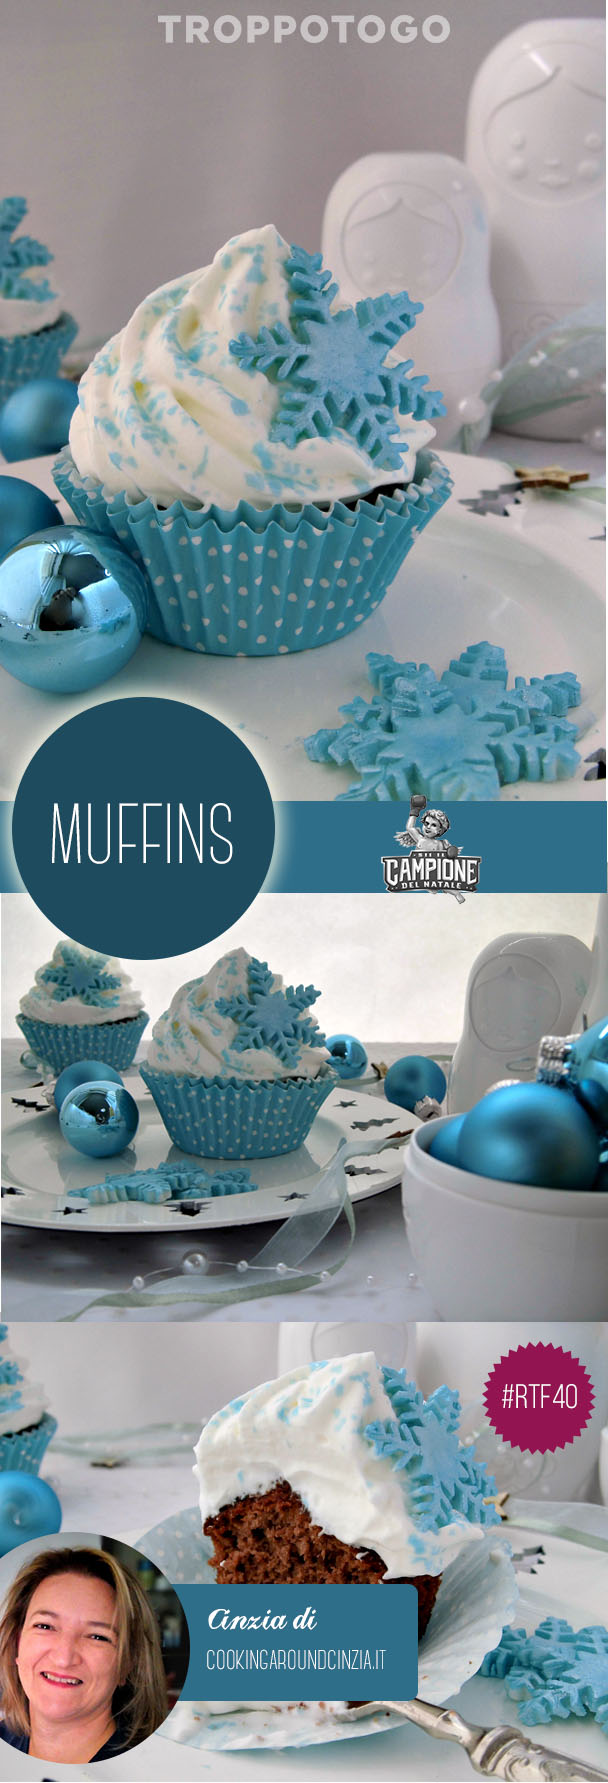 pinnable-image_muffinFINAL